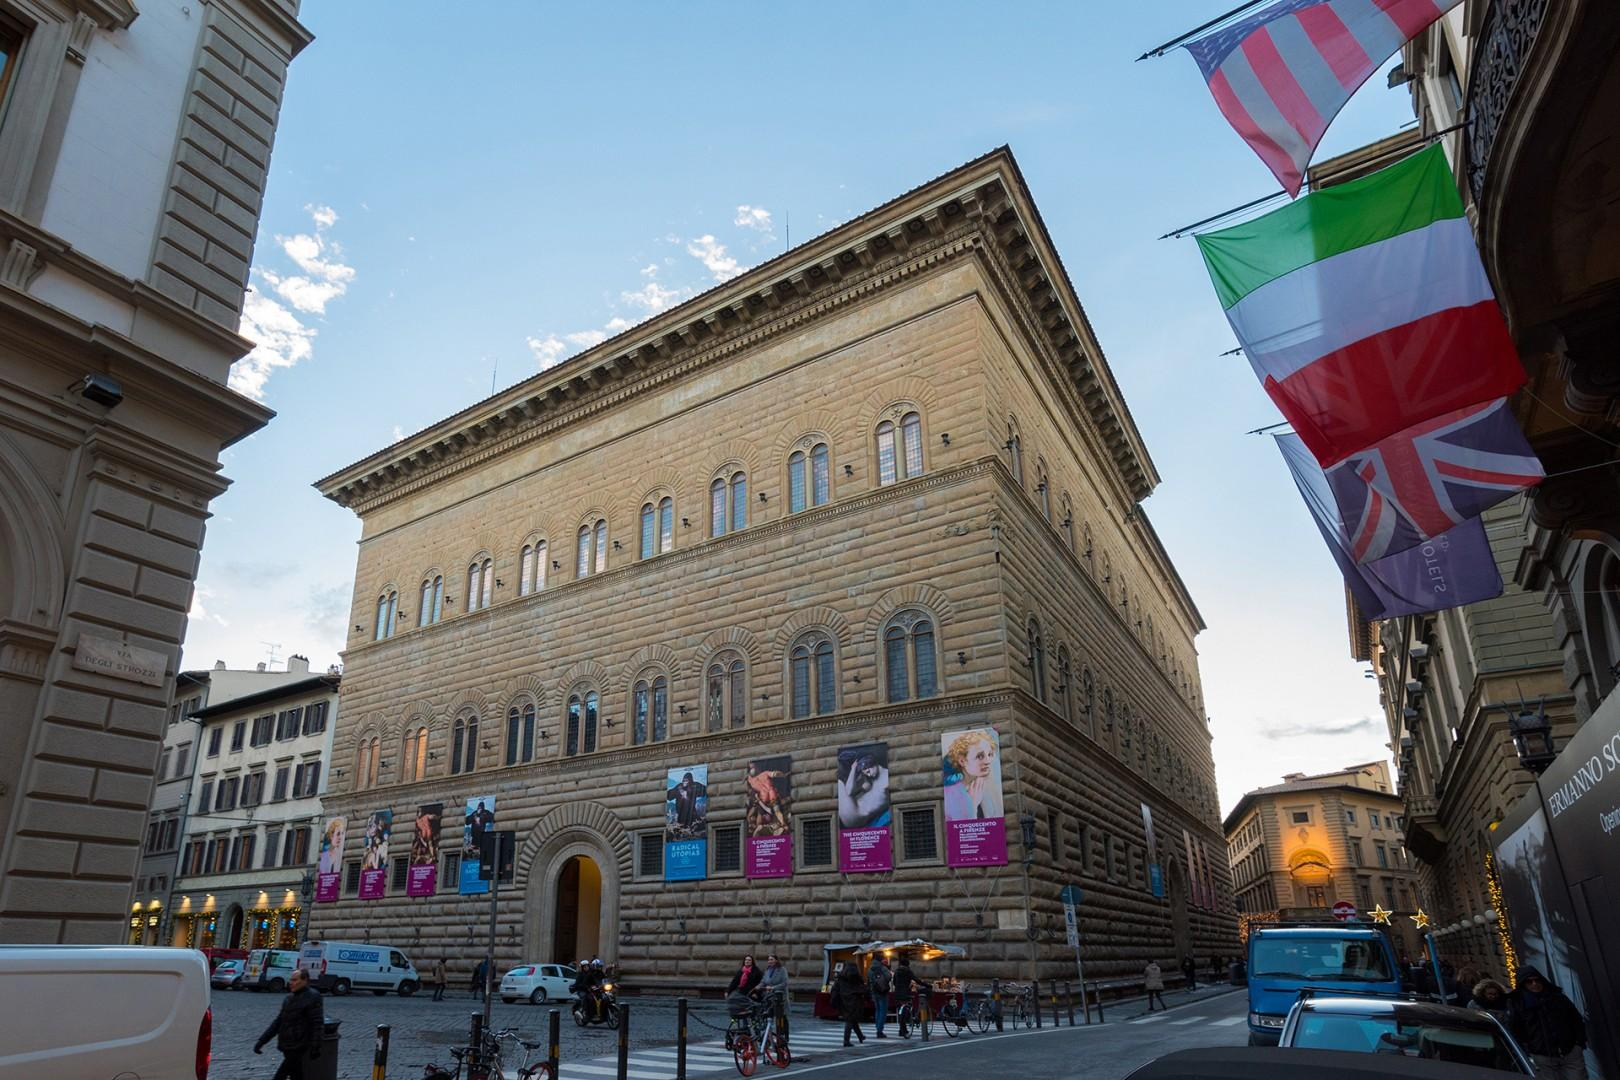 Palazzo Strozzi nearby is known for its architecture and wonderful exhibitions.